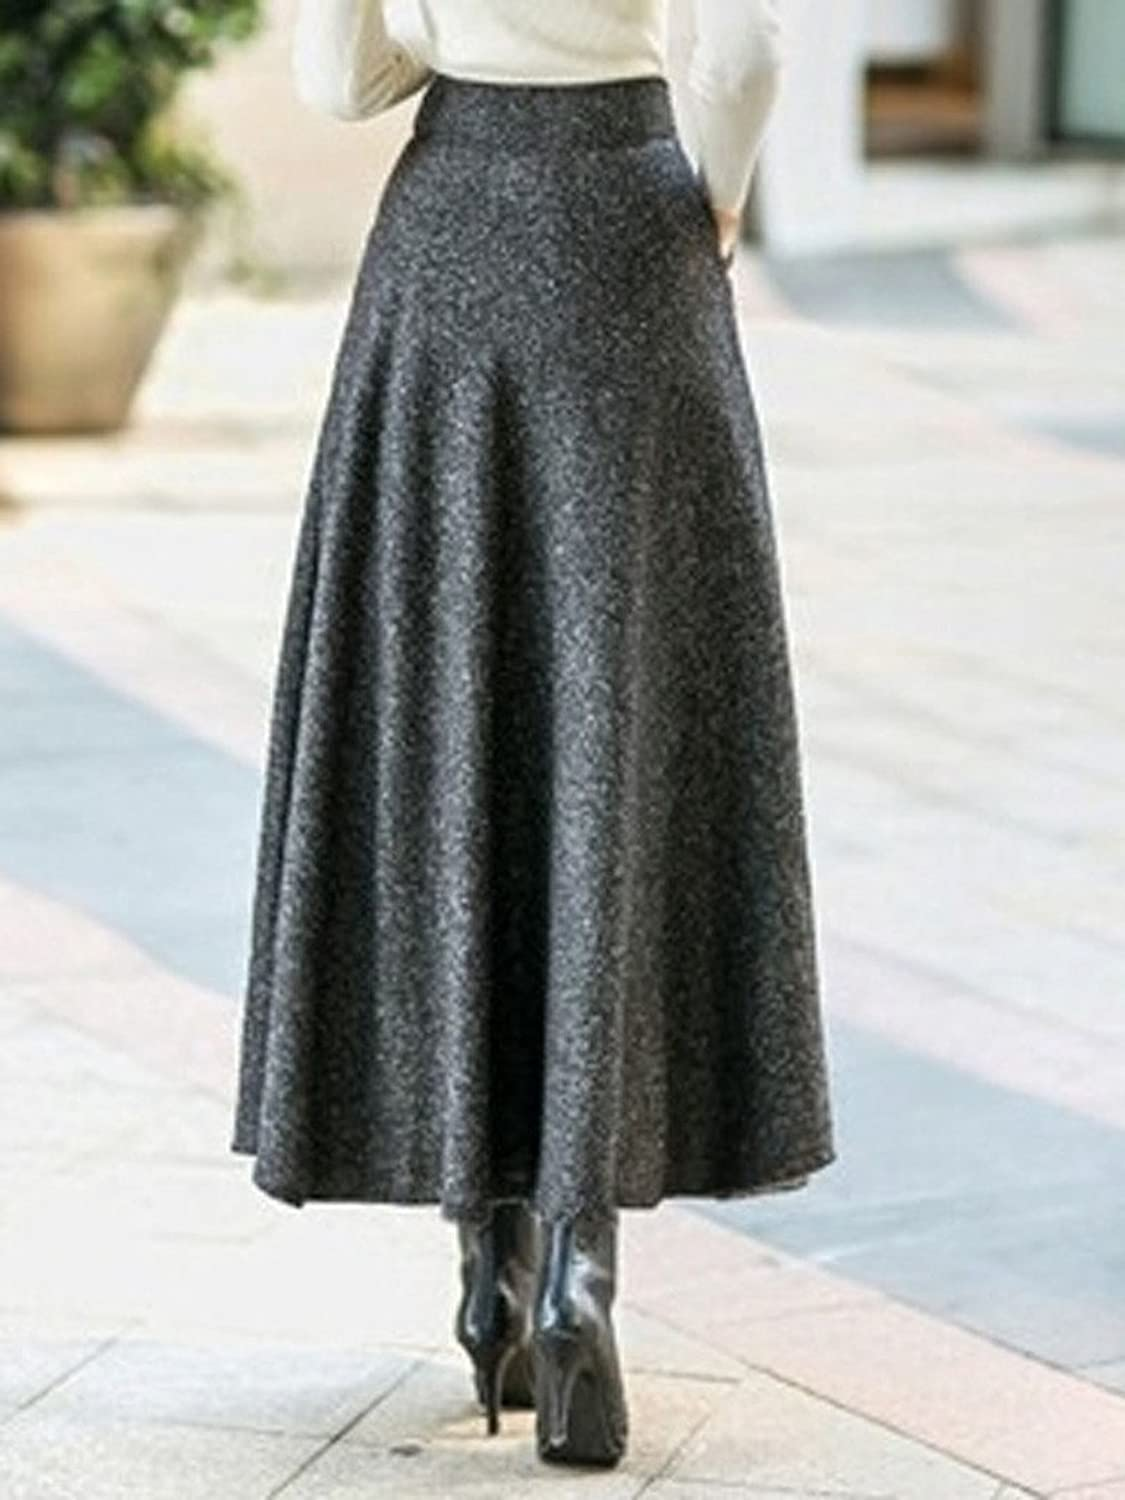 1920s Skirts, Gatsby Skirts, Vintage Pleated Skirts CR Womens High Waist A-line Flared Long Skirt Winter Fall Midi Skirt $27.99 AT vintagedancer.com